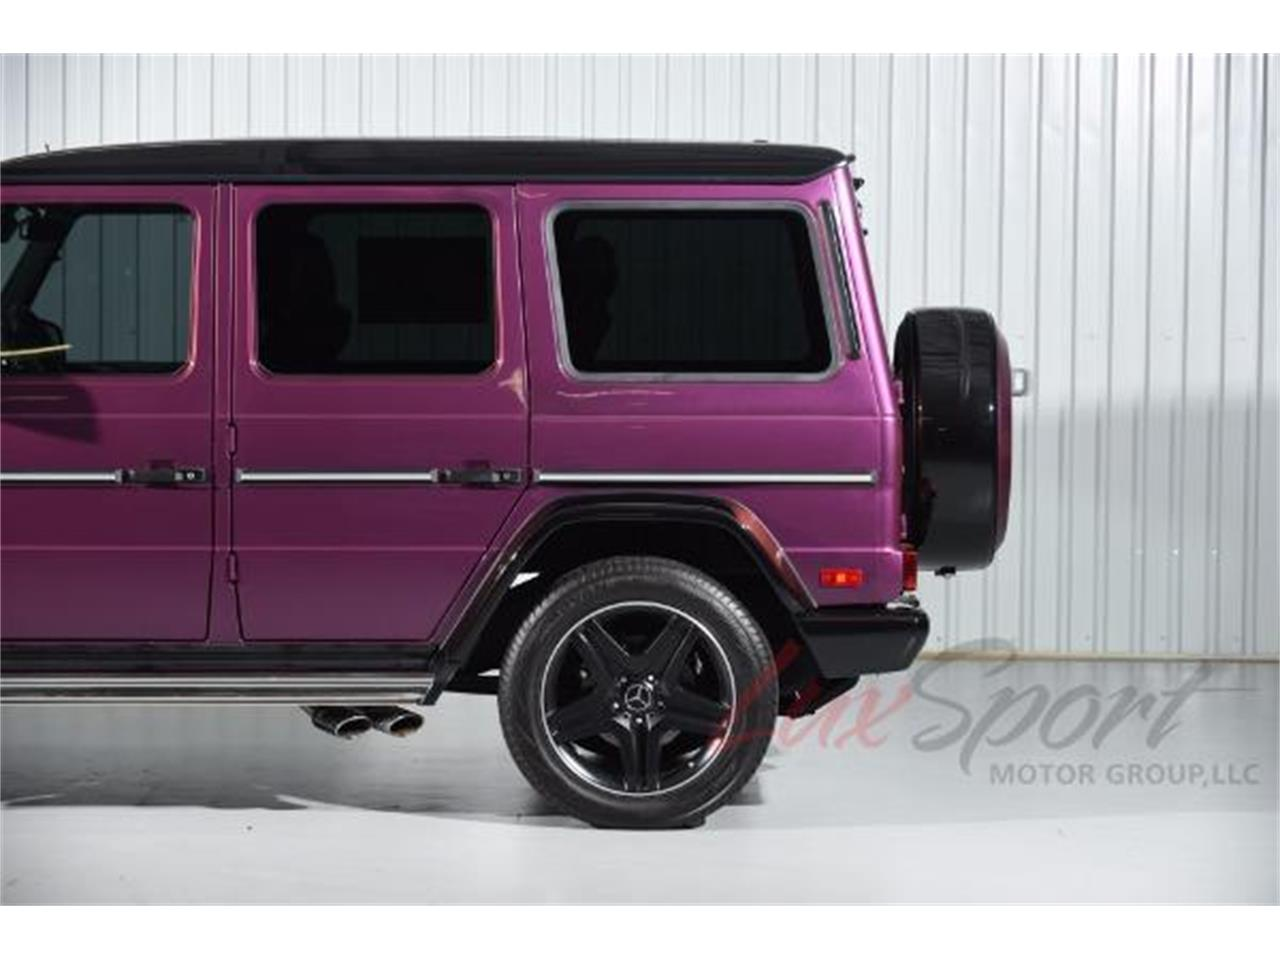 Large Picture of 2016 Mercedes-Benz G63 located in New Hyde Park New York Auction Vehicle - MO0I